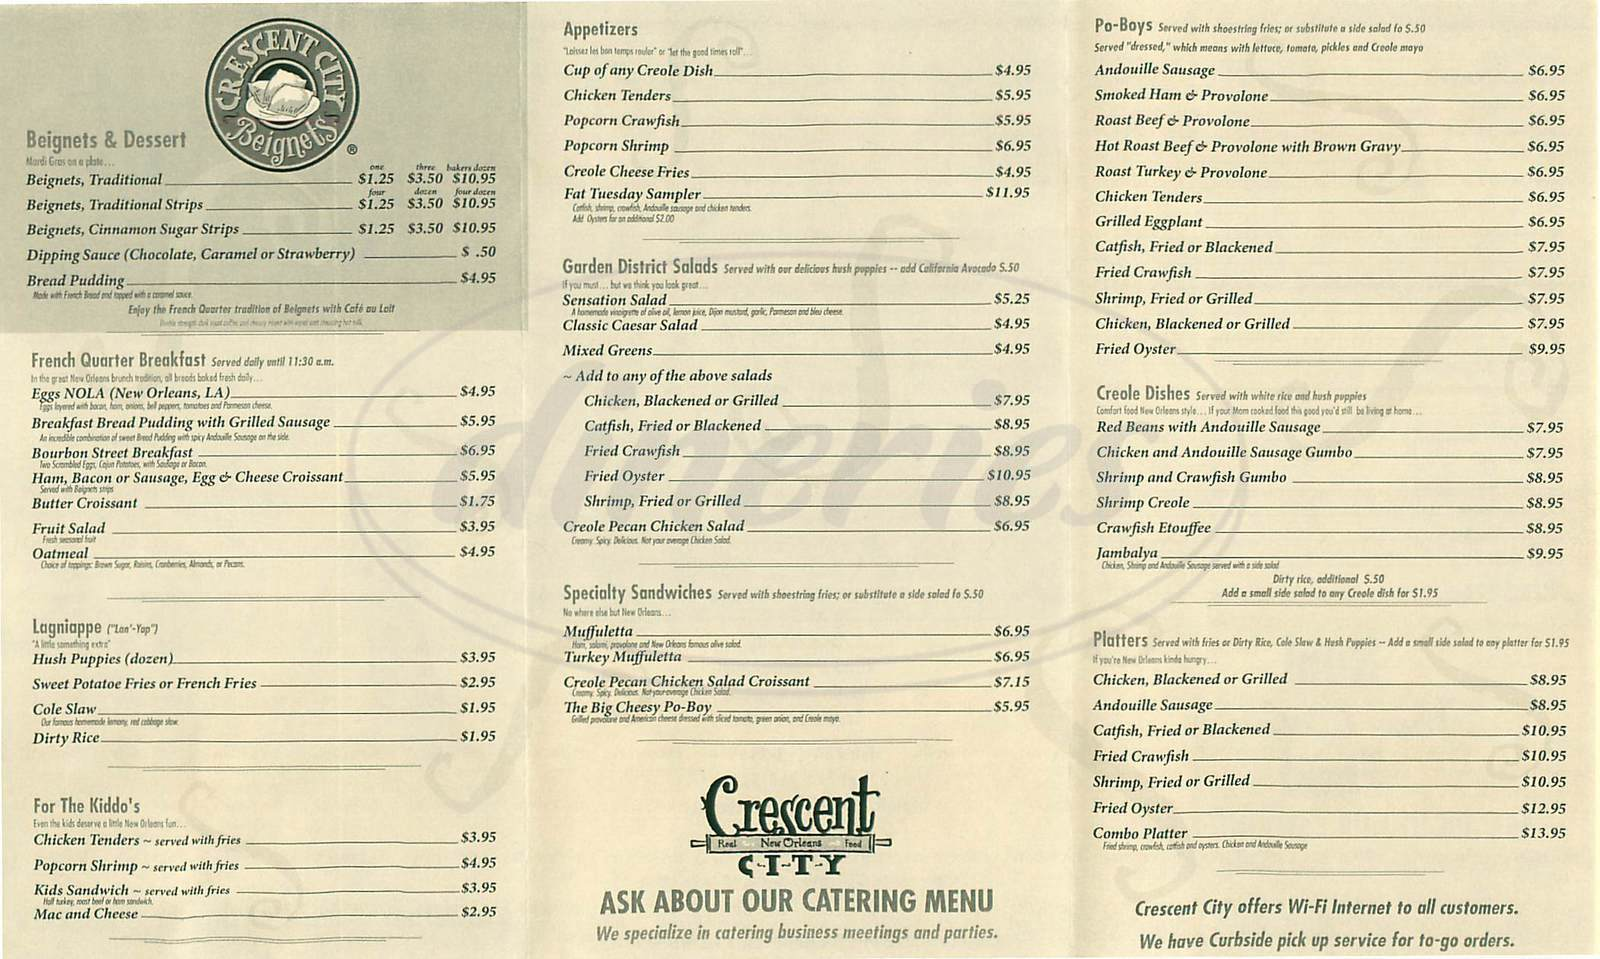 menu for Crescent City